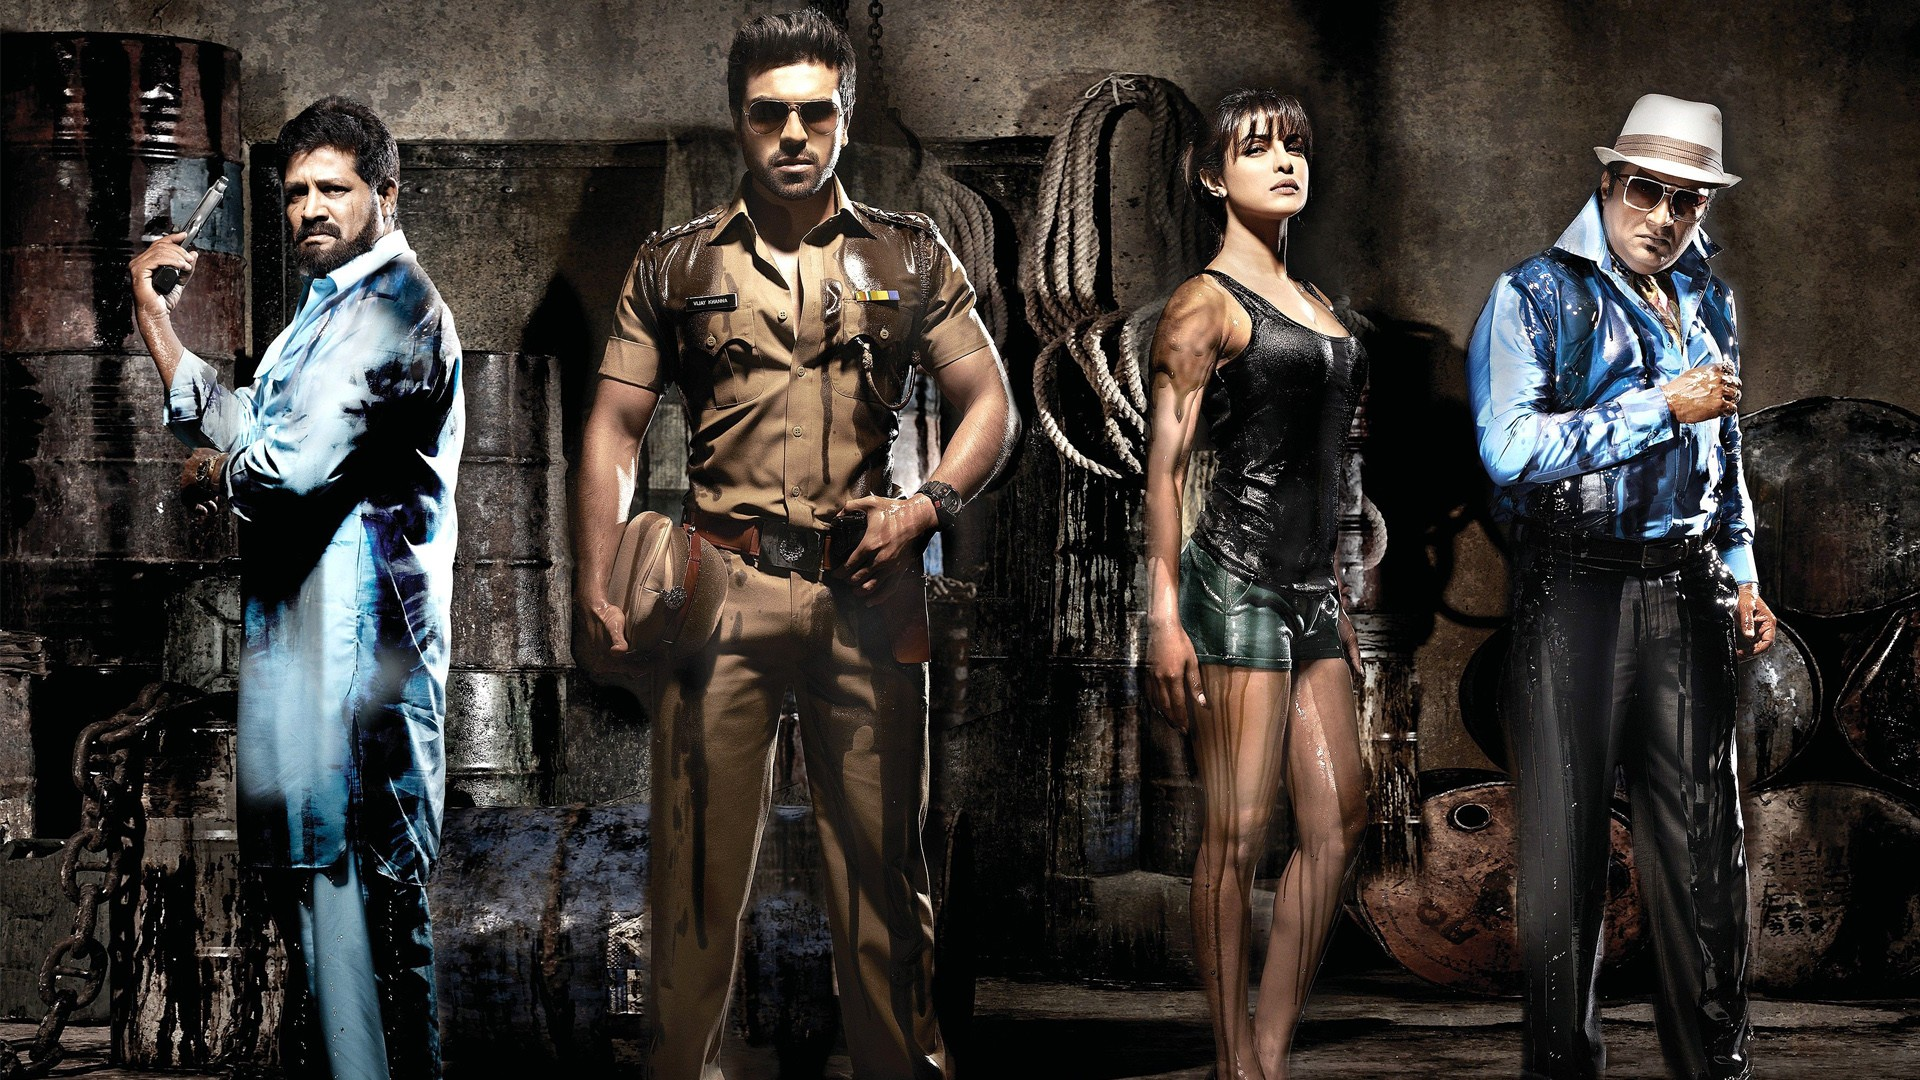 Vijay 3d Hd Wallpapers Toofan Zanjeer Movie Wallpapers Hd Wallpapers Id 12512